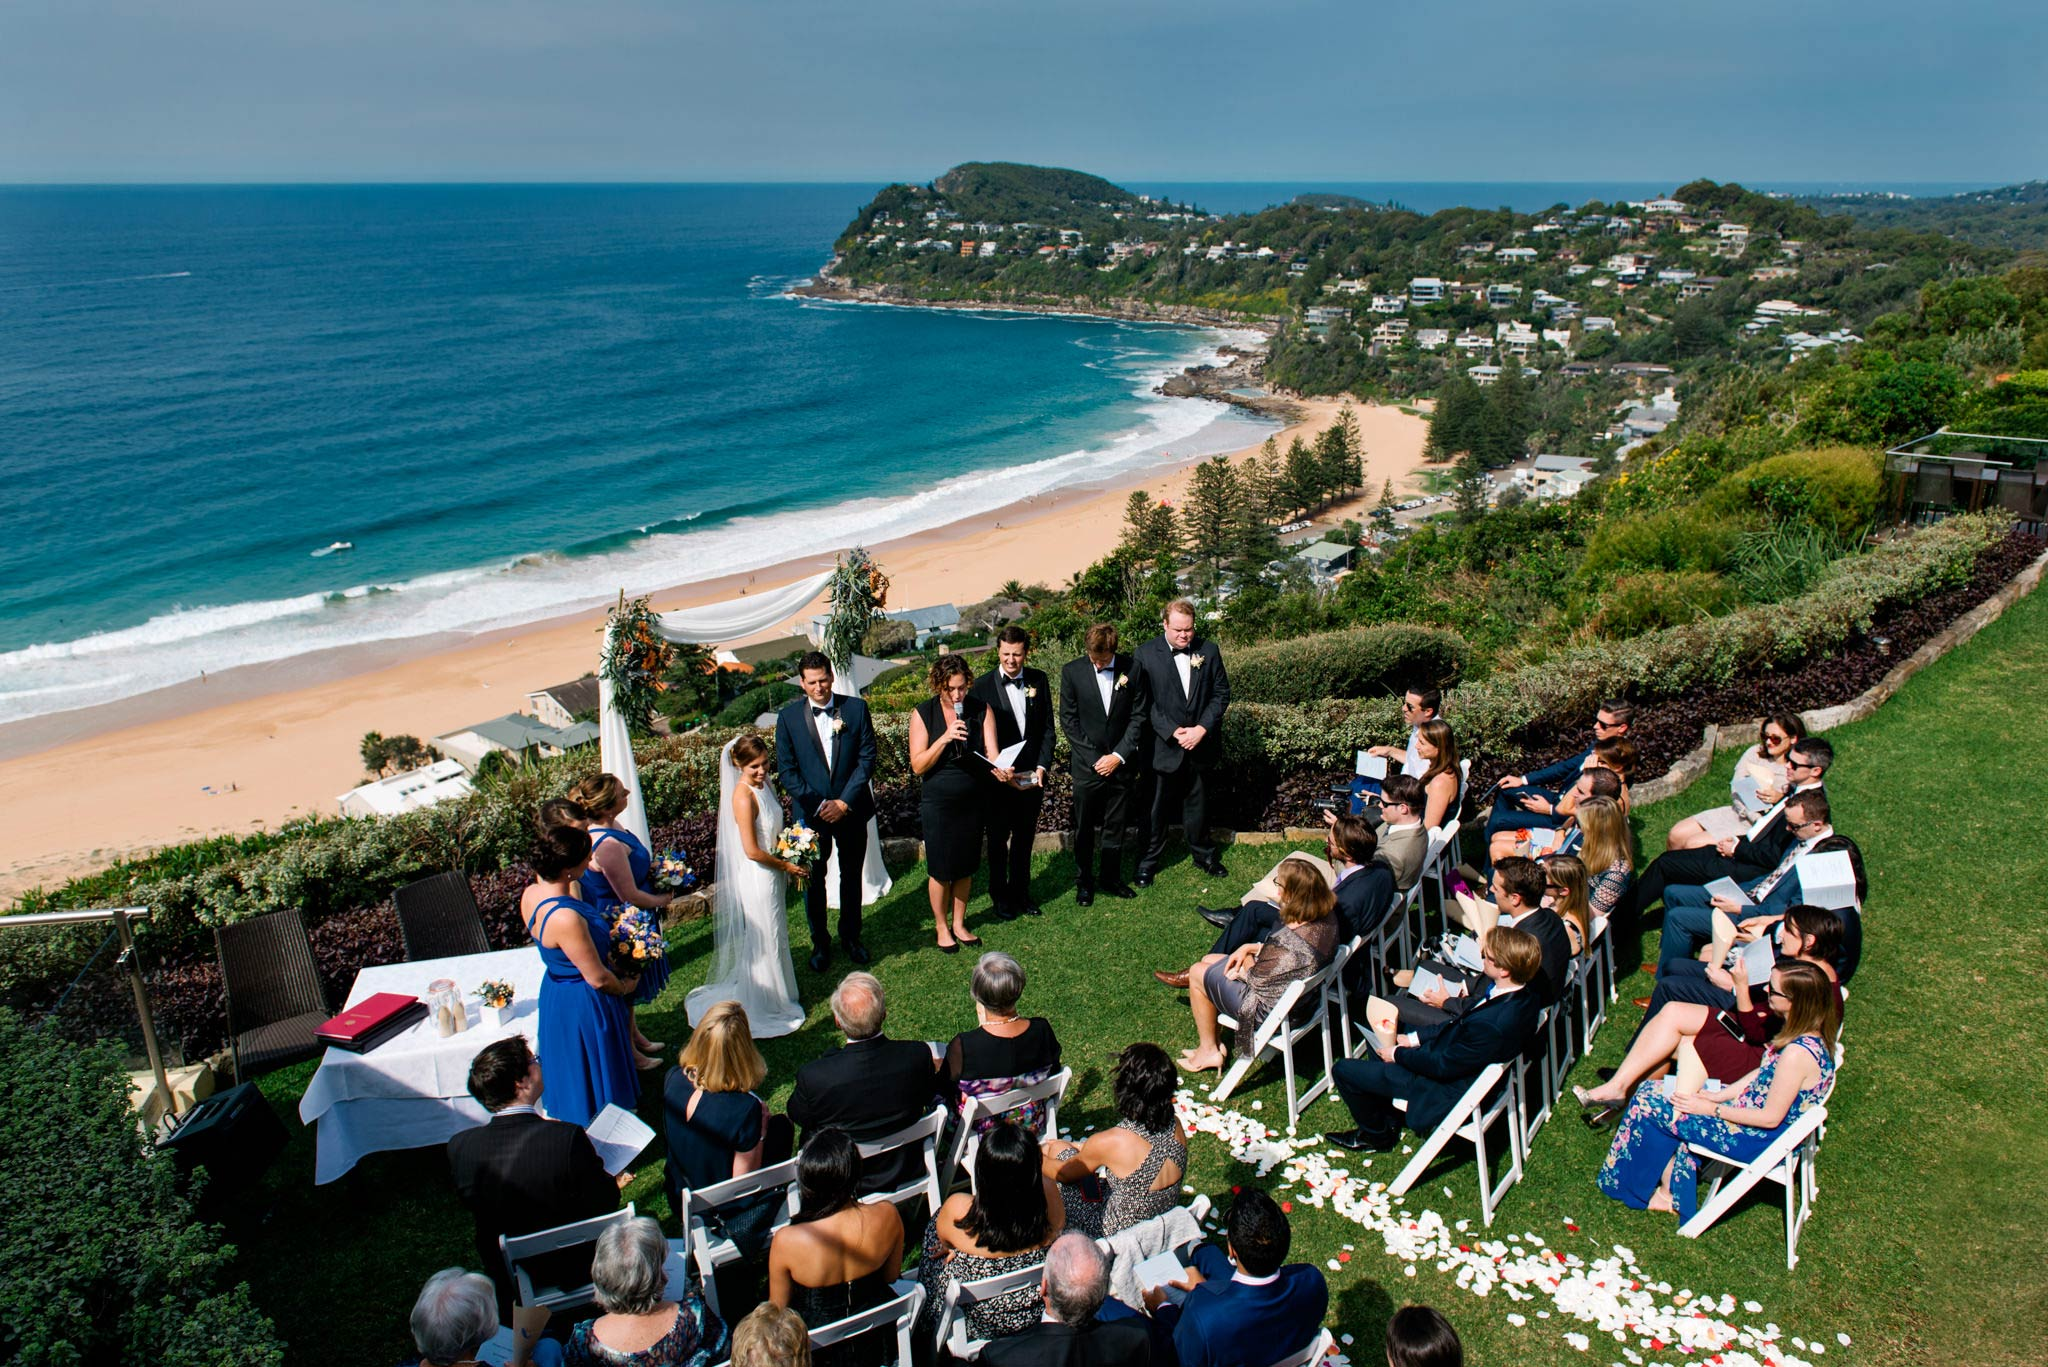 Wedding northern beaches - Jonah's Whale Beach